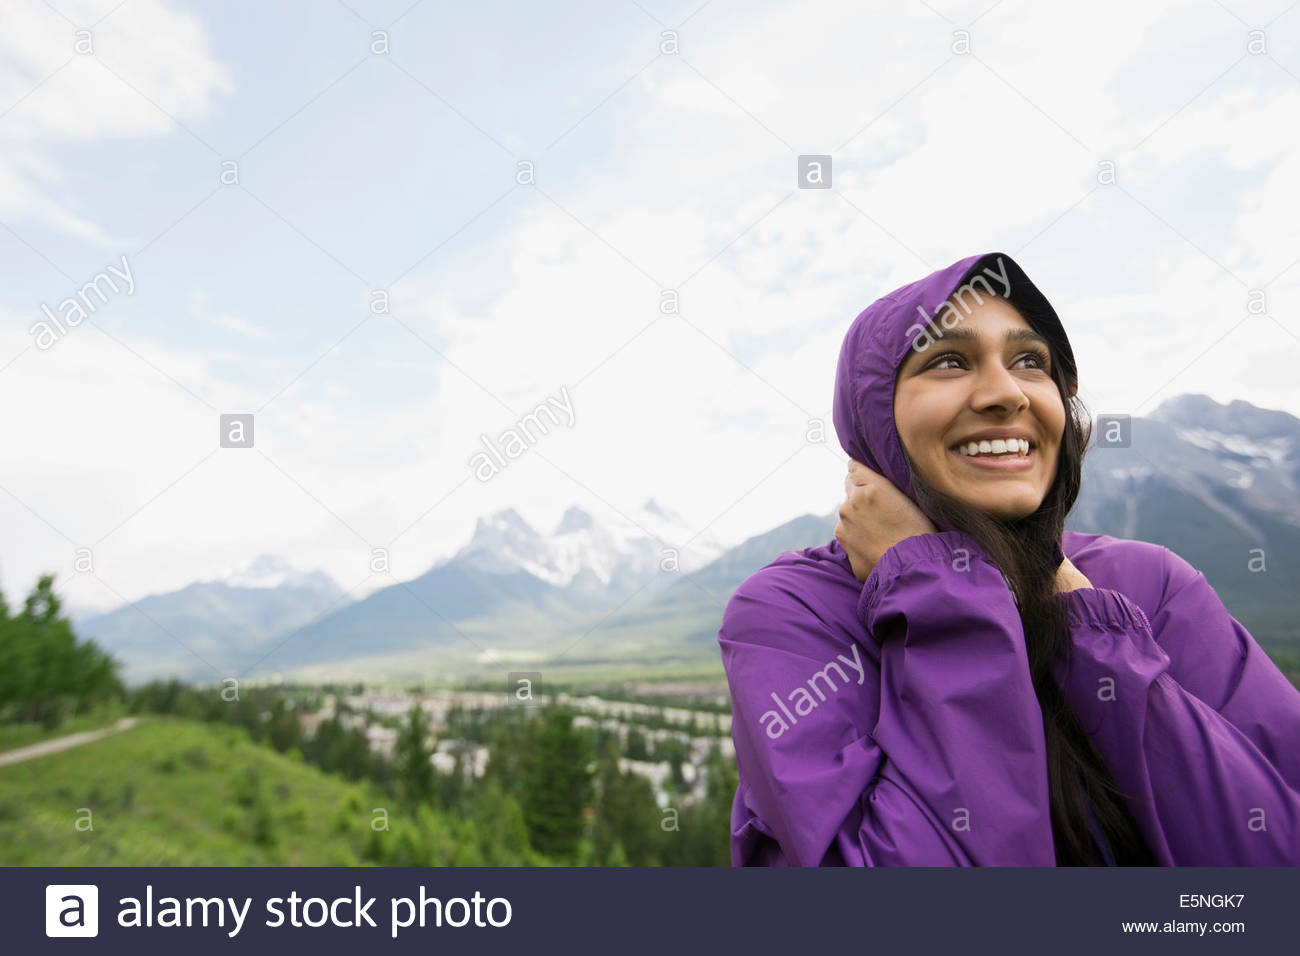 Smiling woman in hooded jacket near mountains - Stock Image